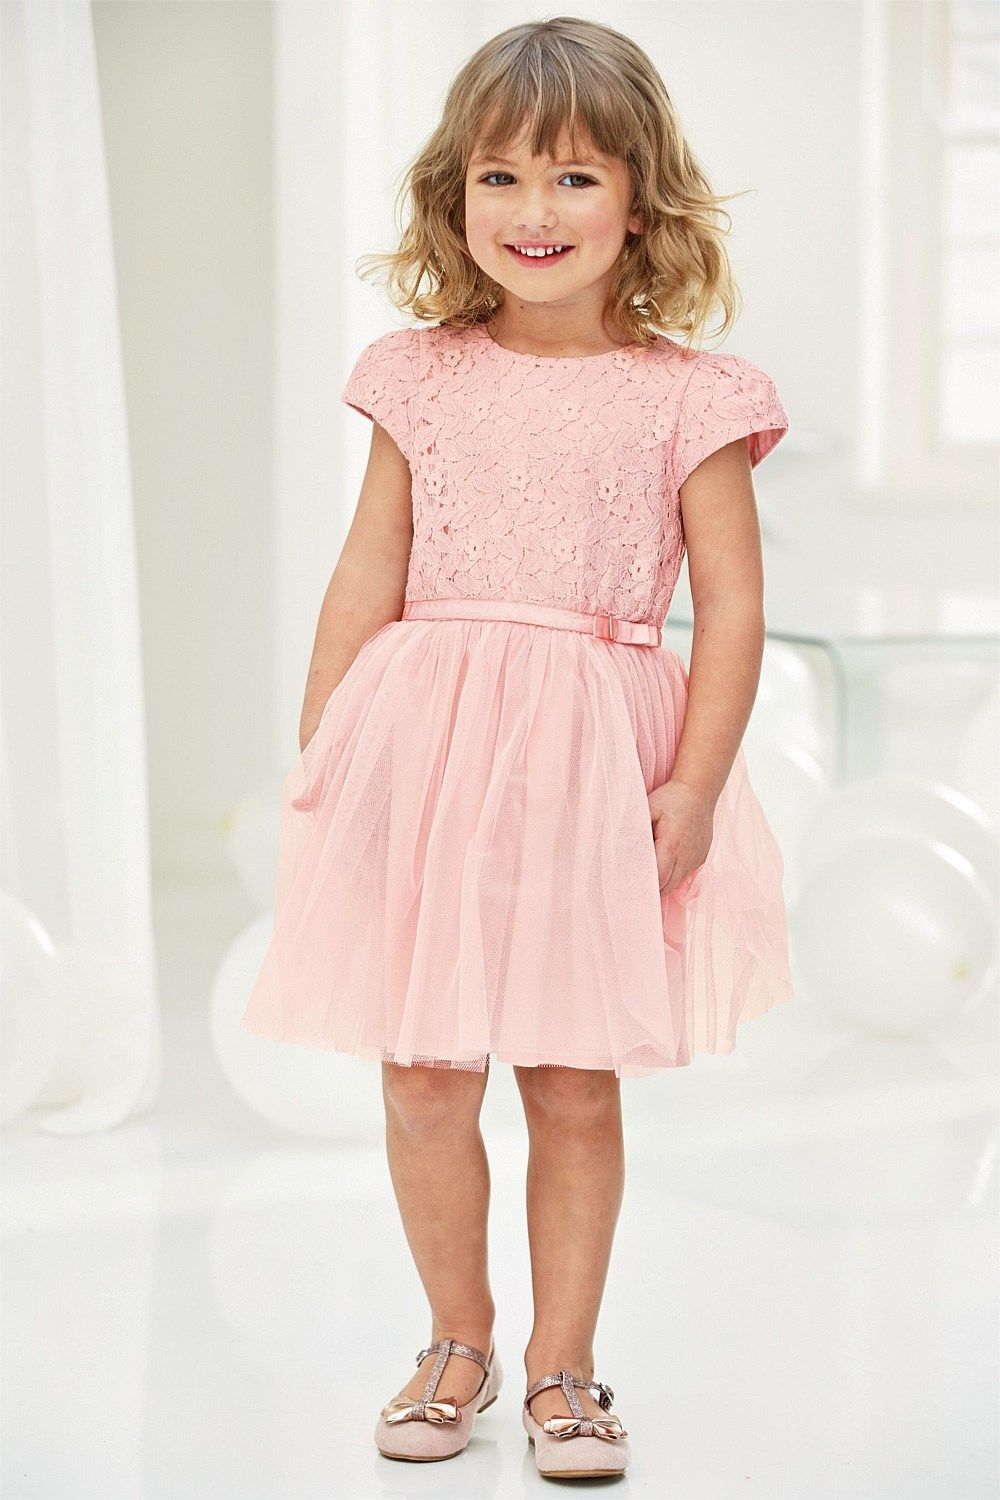 Girls Dresses Online | 3 Months to 6 Years - Next Pink Lace Party ...